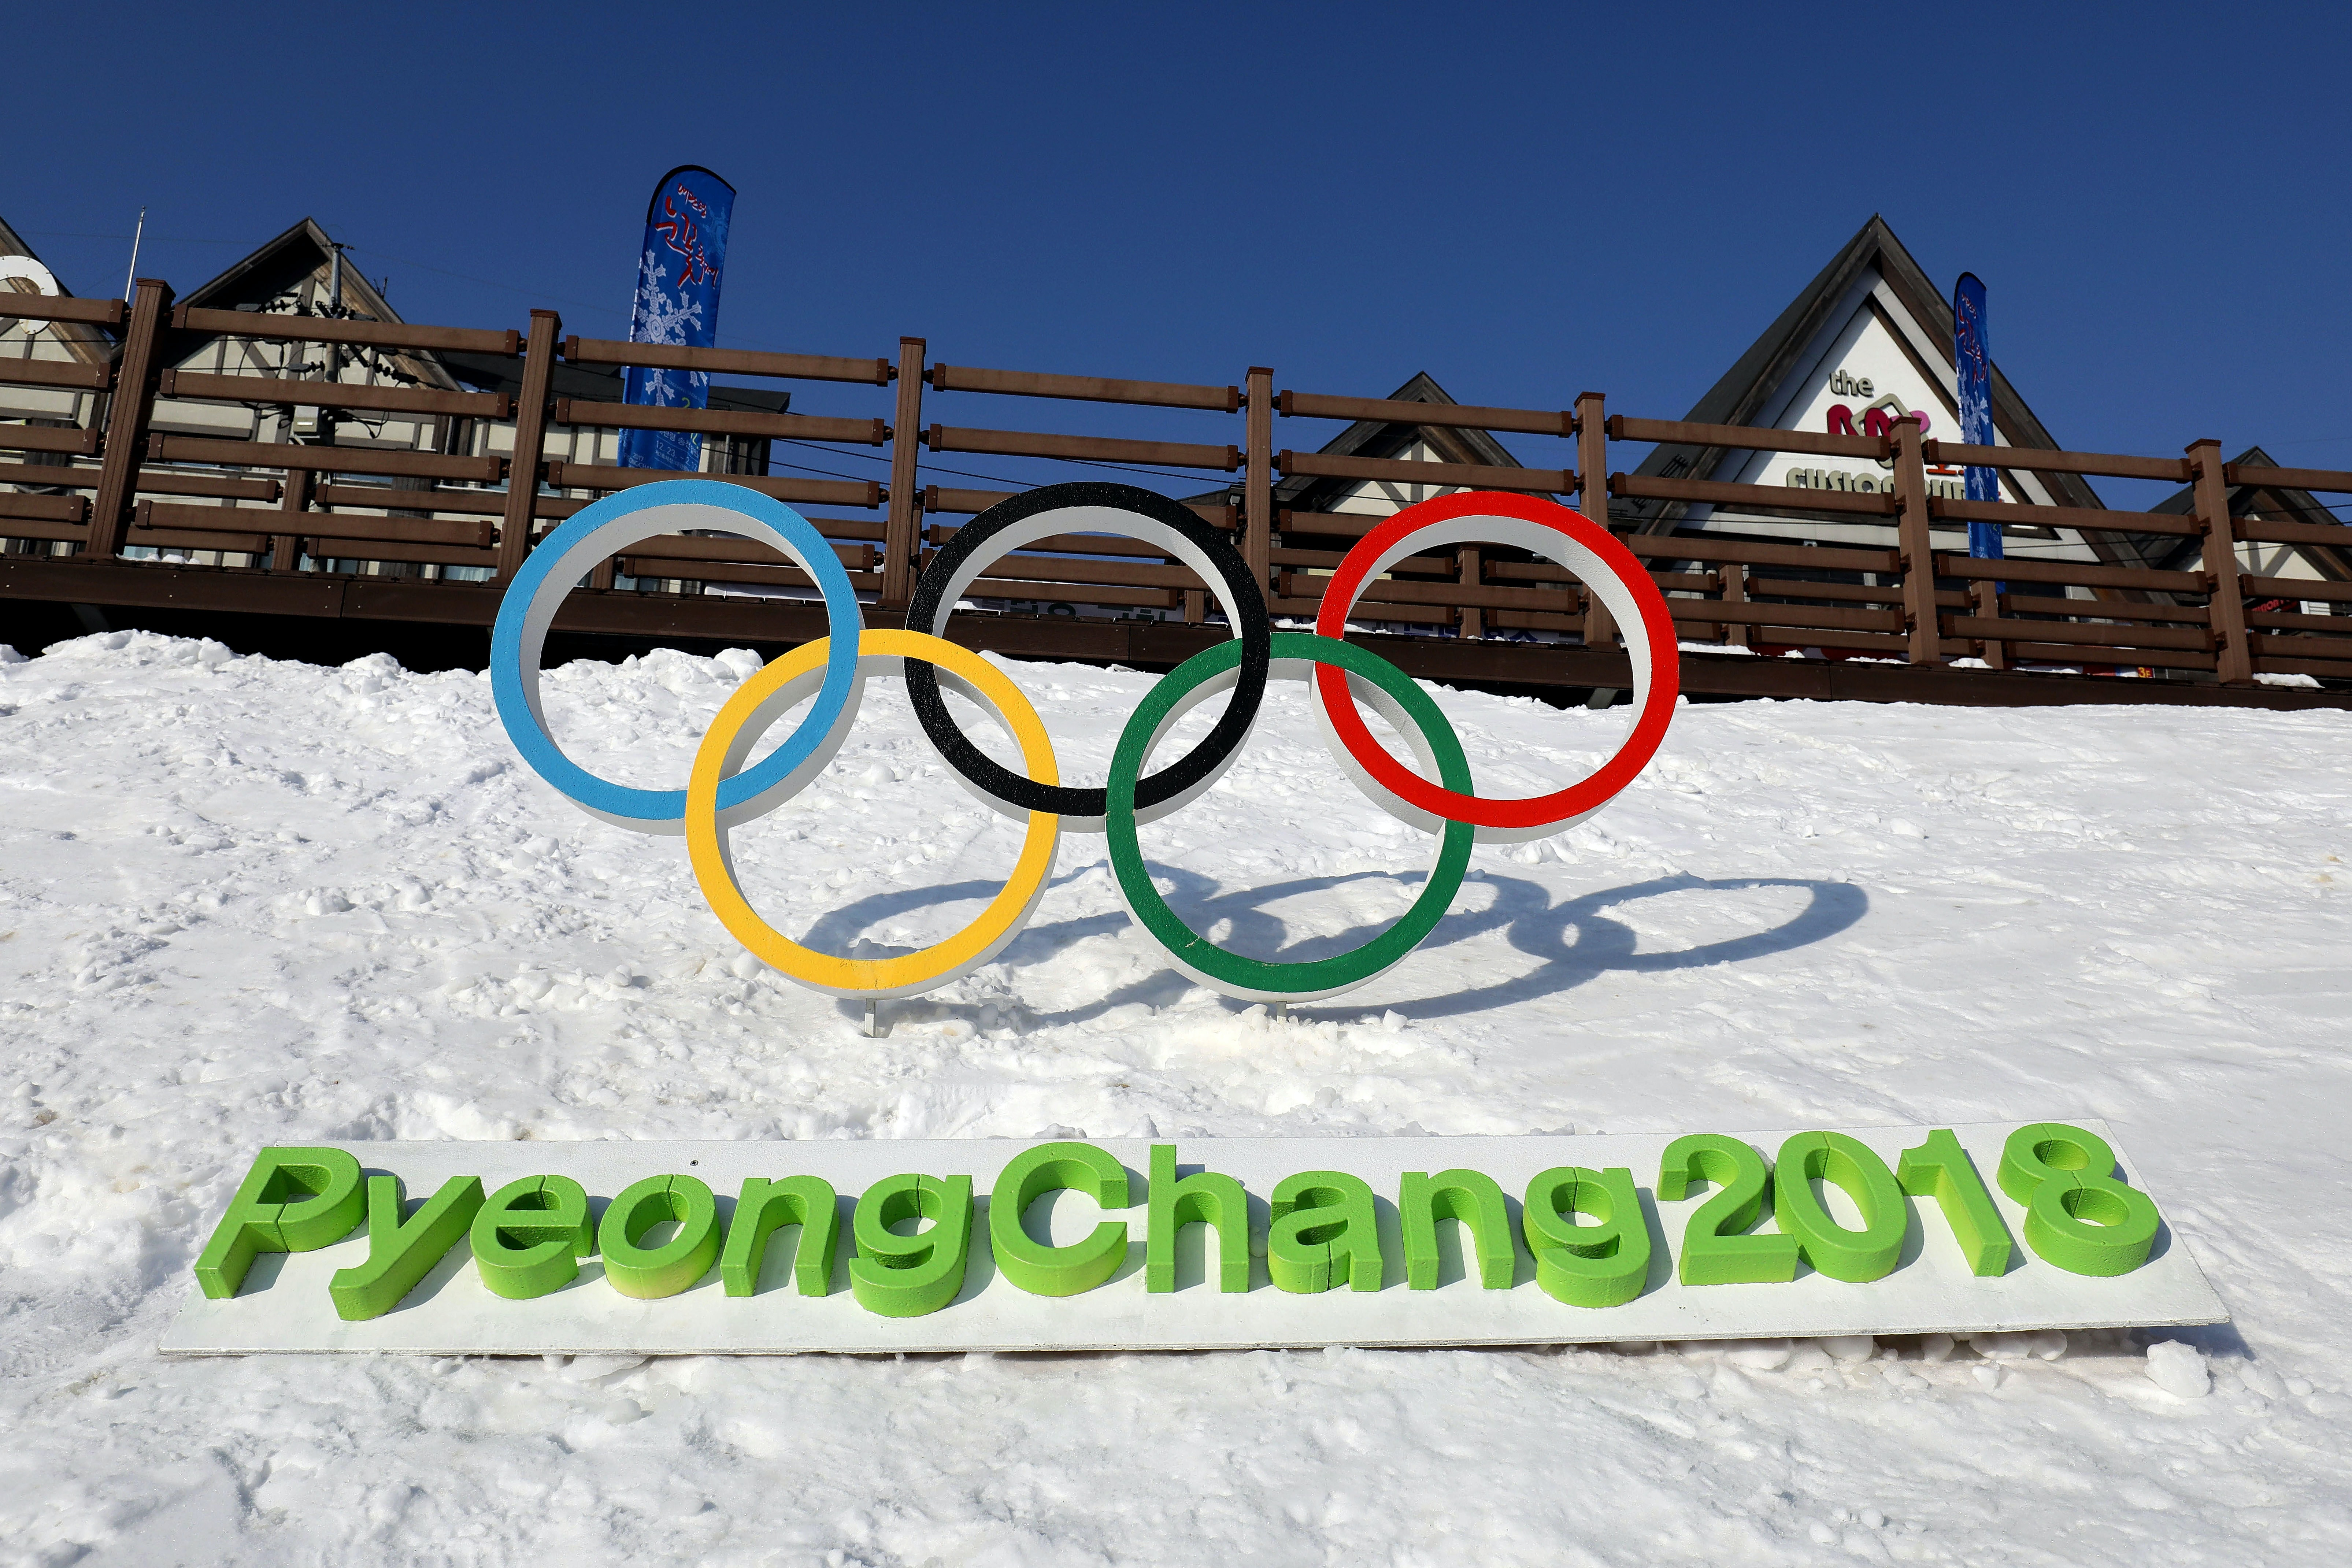 Olympics: Russia banned from Pyeongchang Games - IOC